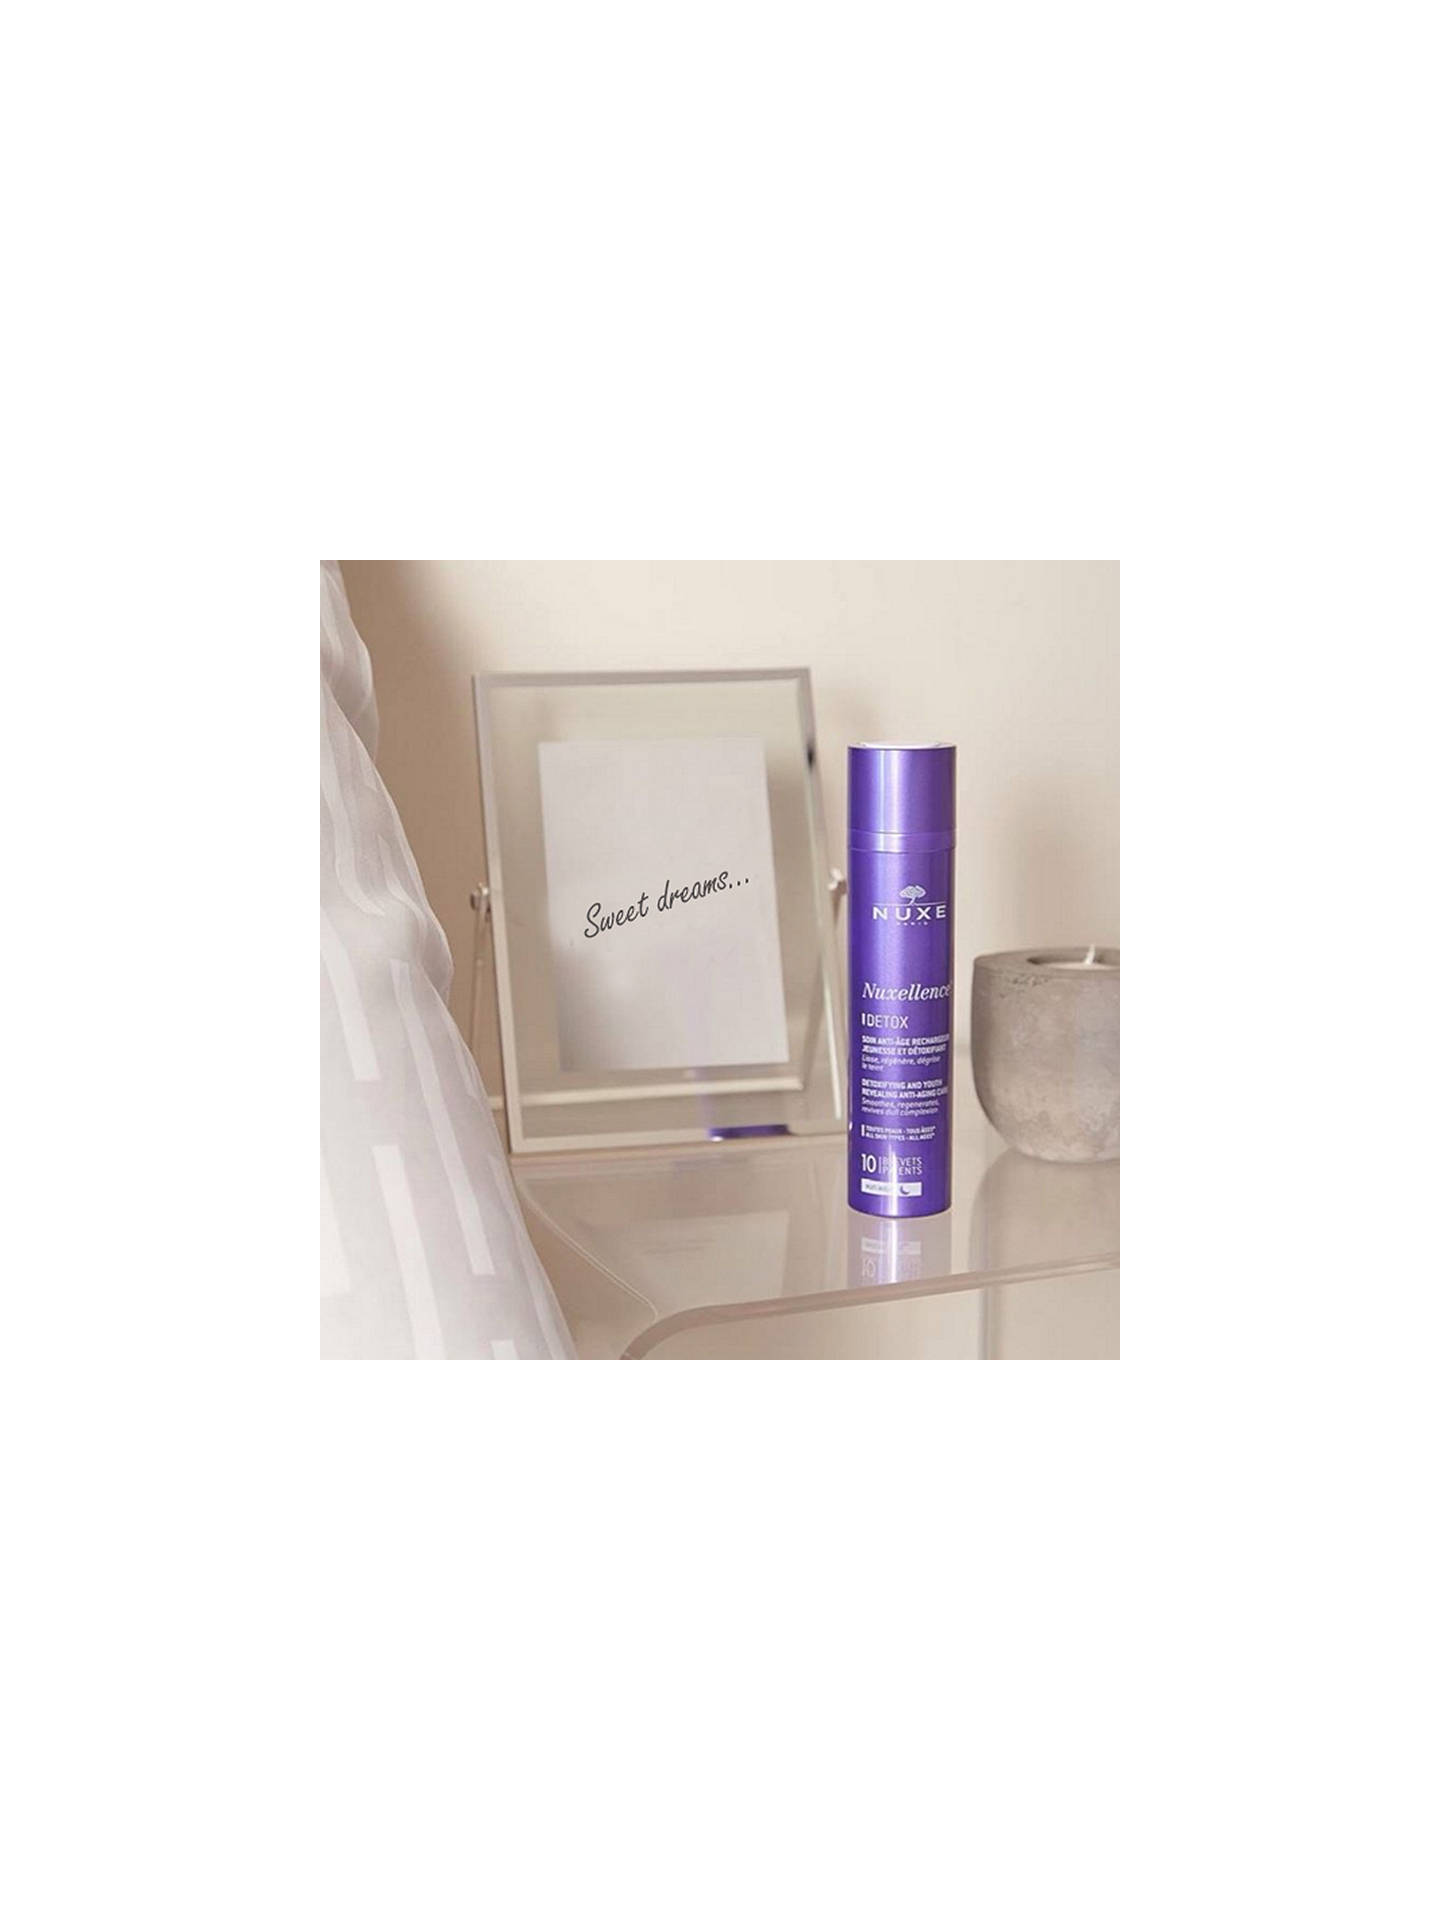 Buy NUXE Nuxellence® Detox Detoxifying and Anti-Ageing Night Care, 50ml Online at johnlewis.com